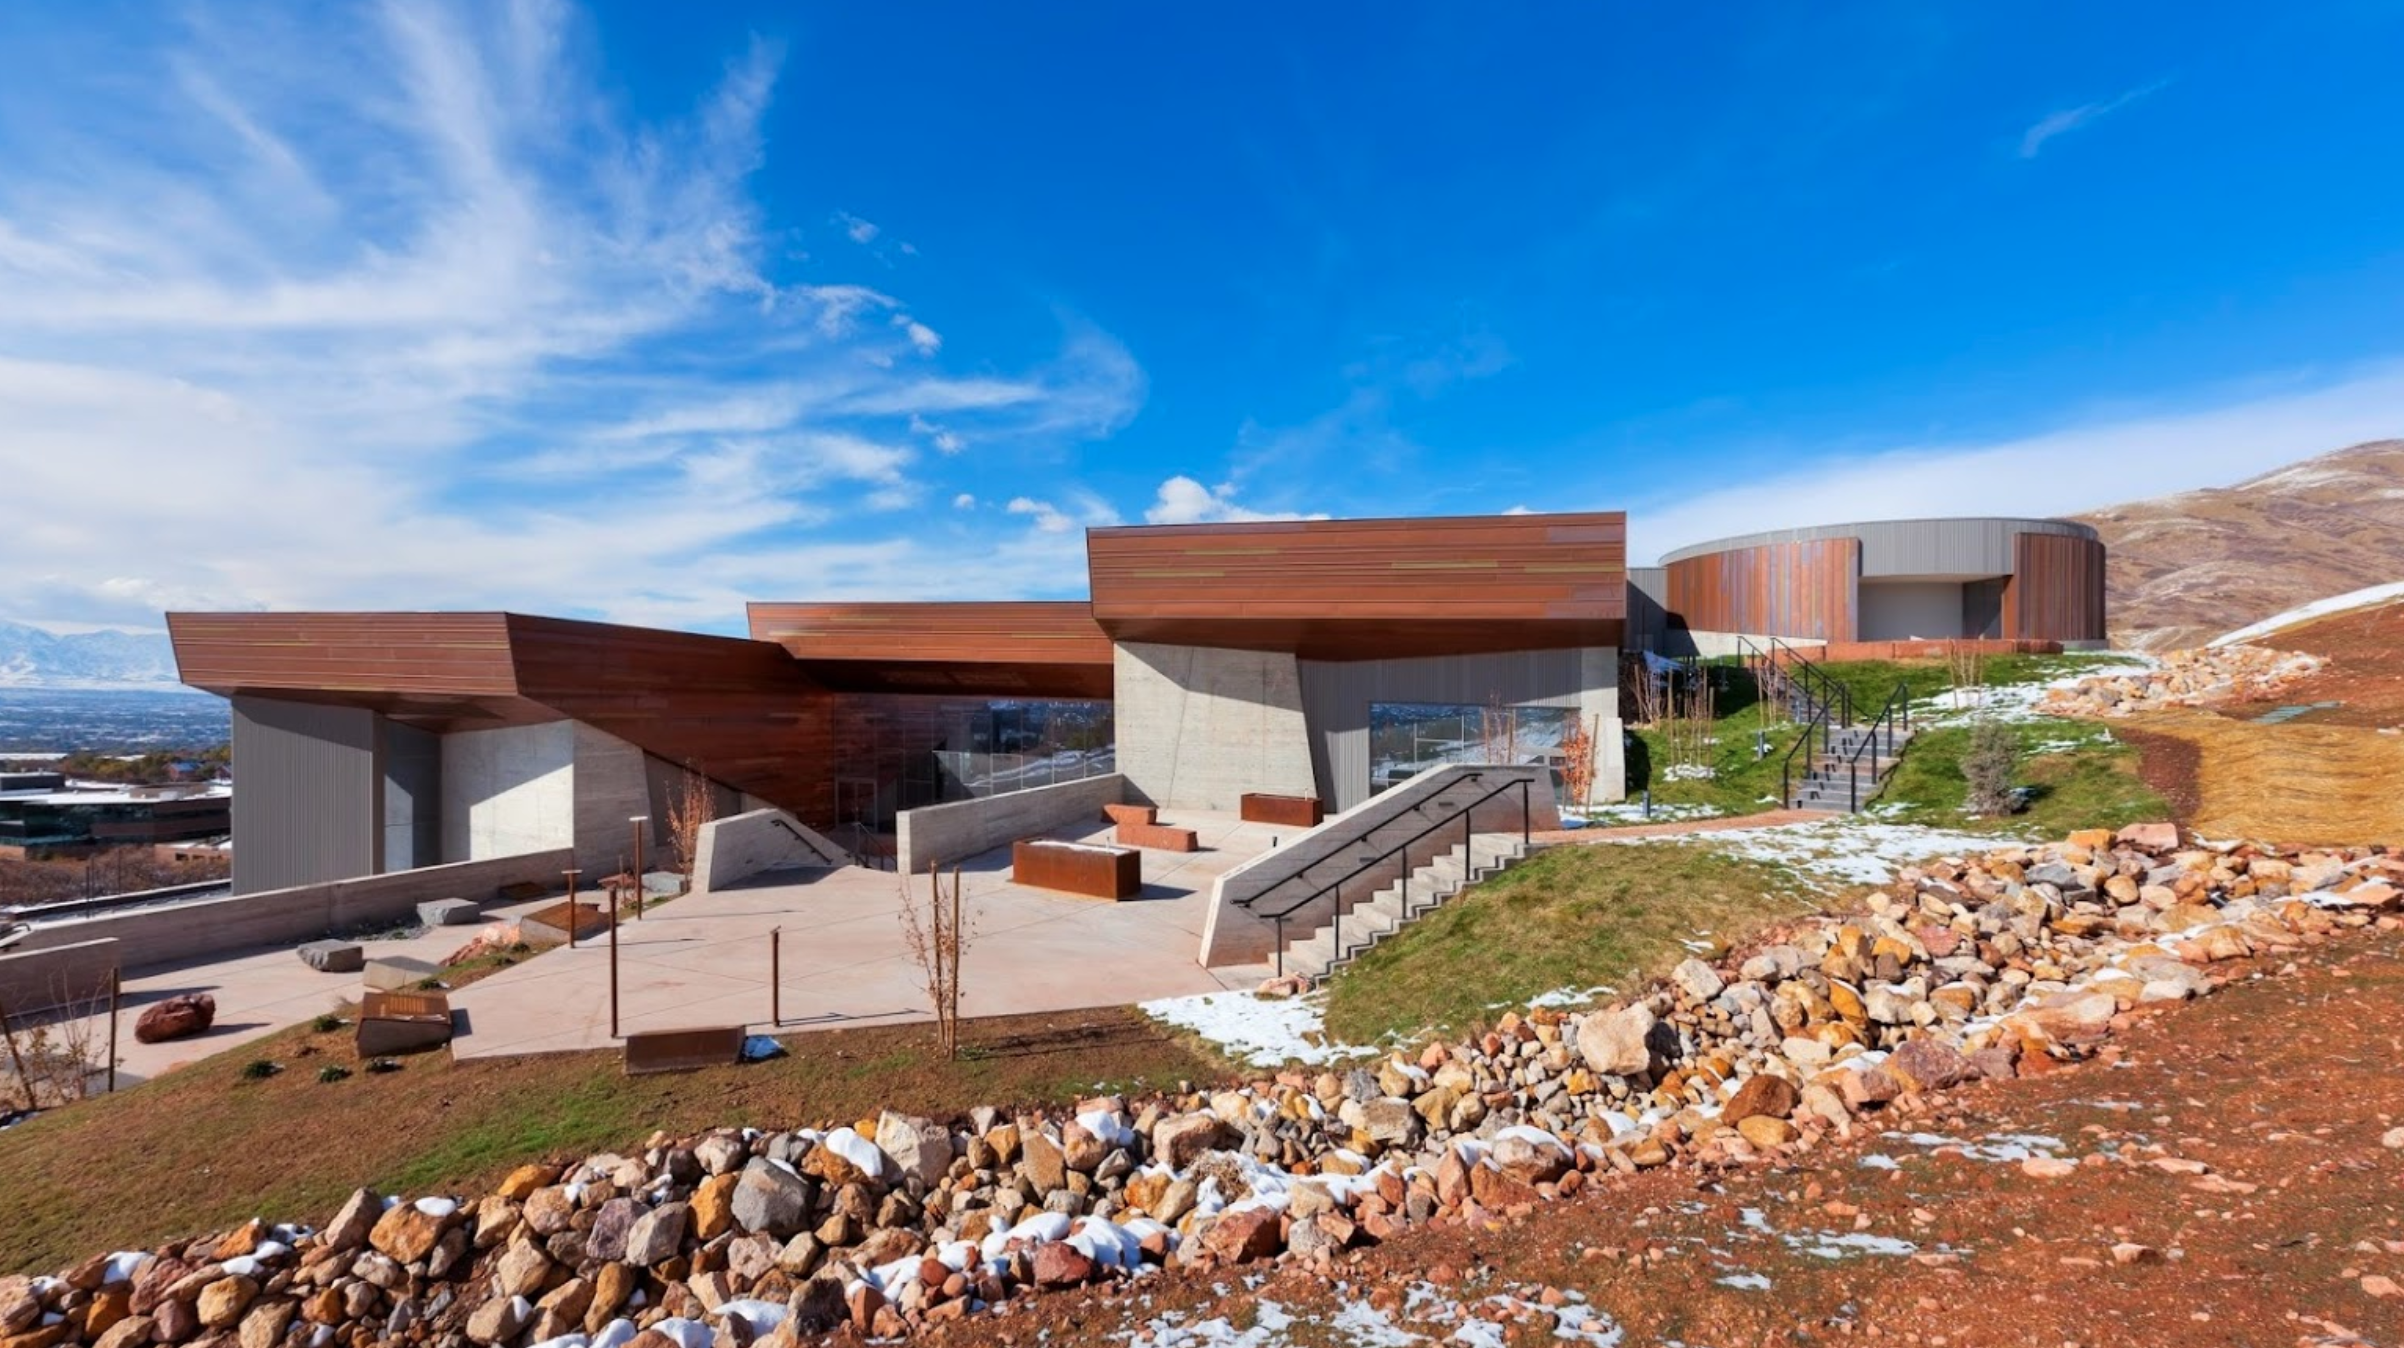 The 163,000-Square-Foot Rio Tinto Center Is One Of Utah's Most Beautiful Buildings